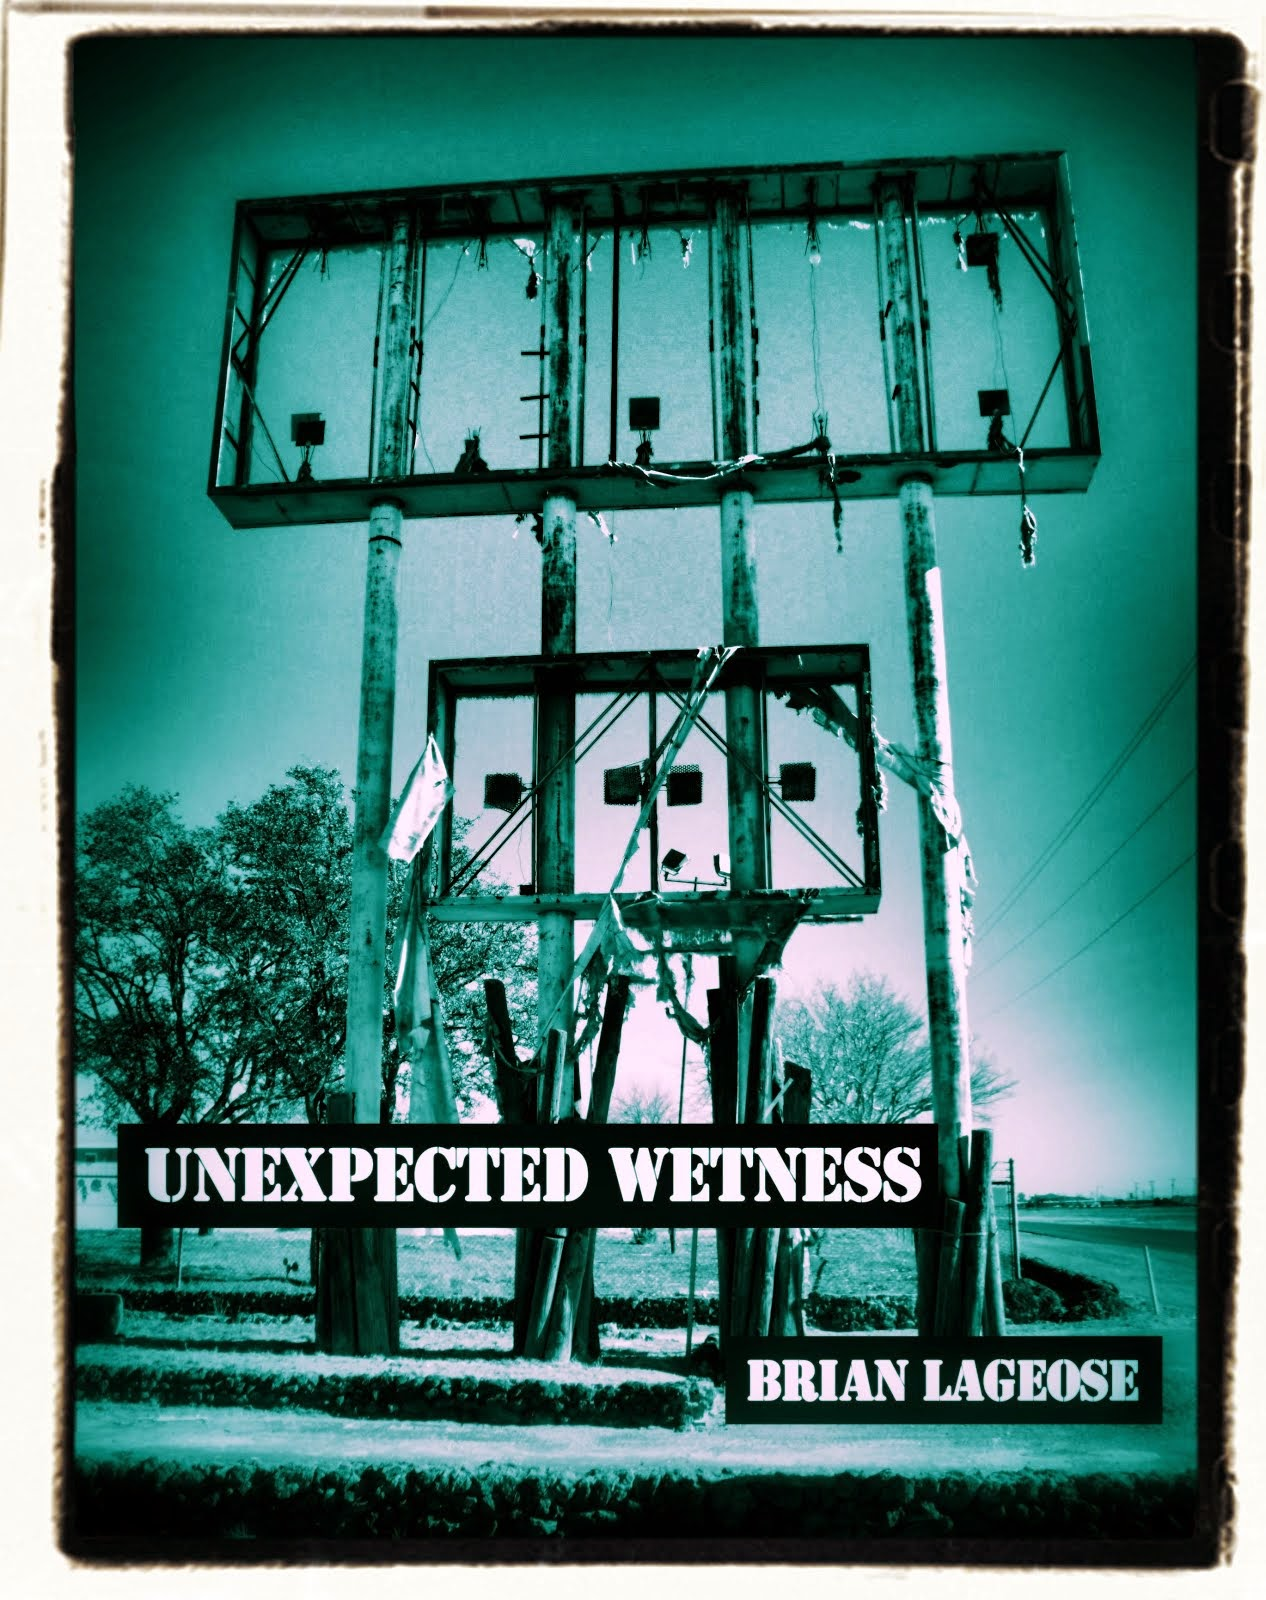 """Unexpected Wetness"" Now Available on Amazon. Click for More Details."